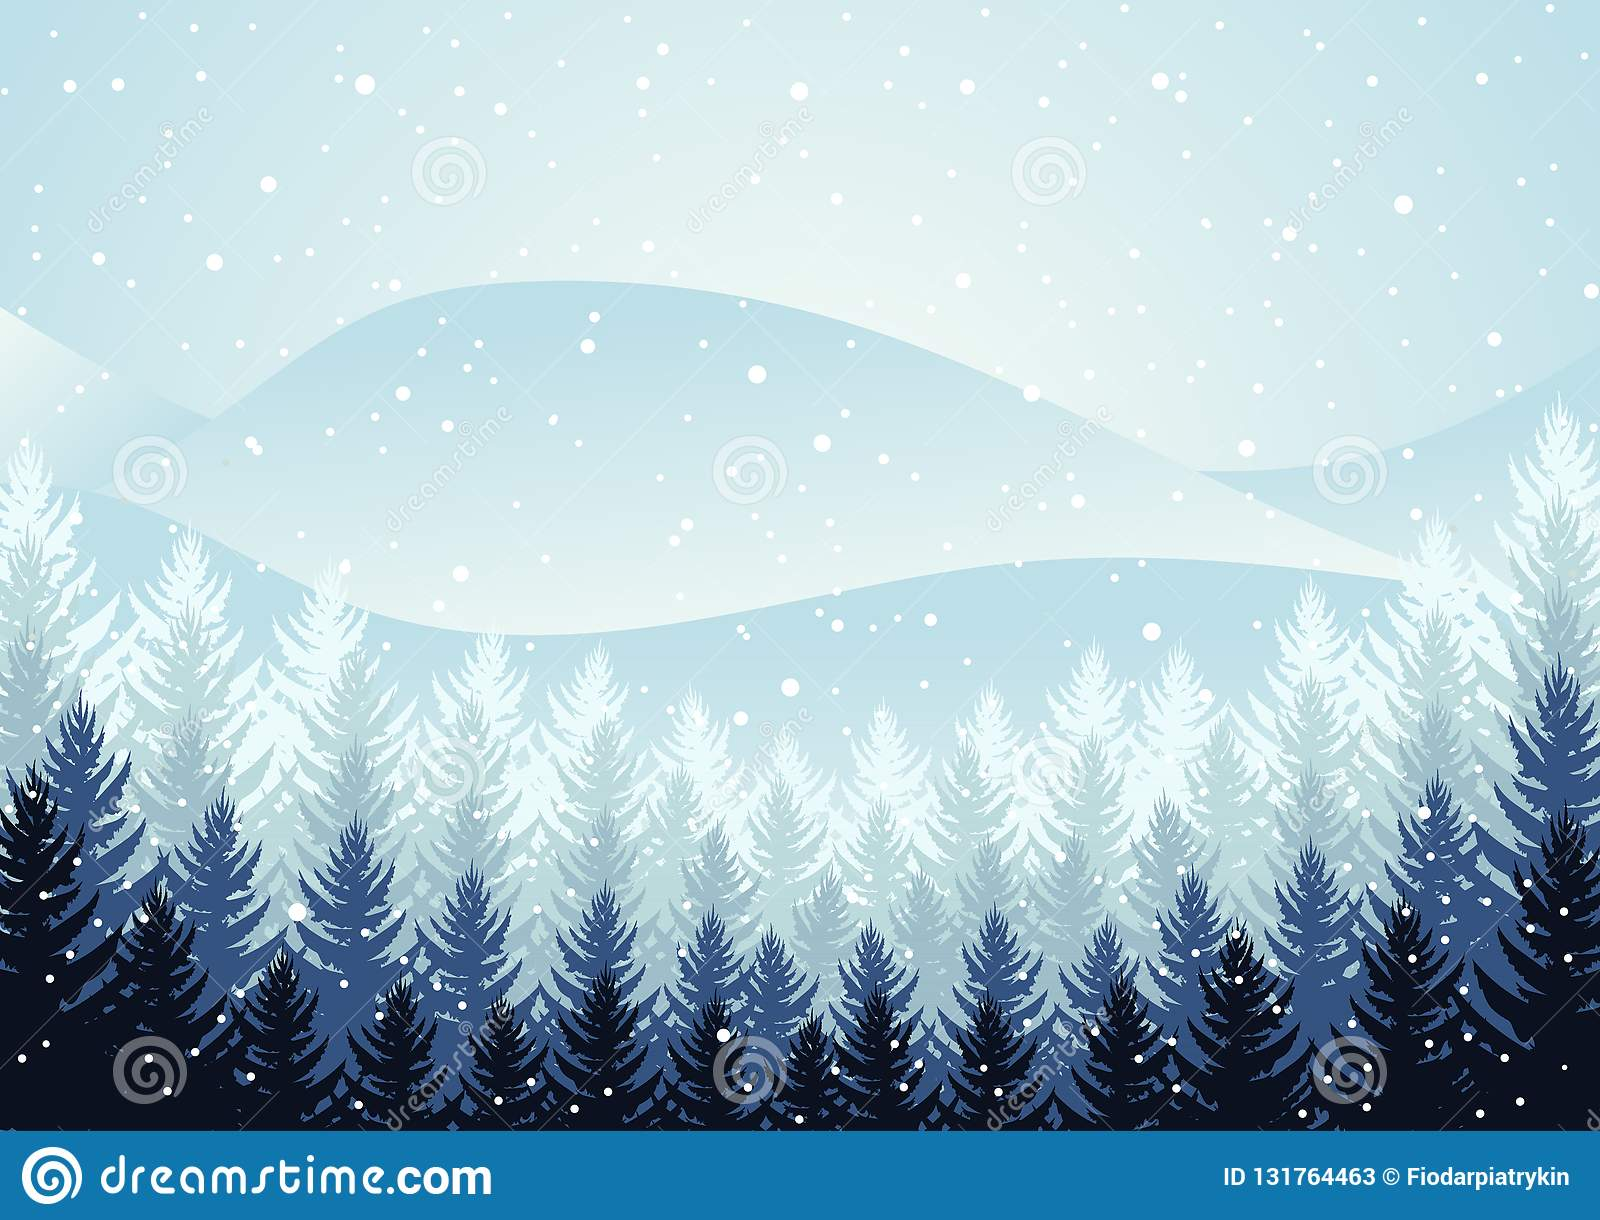 Christmas Weather.Winter Night Forest Falling Snow In The Air Christmas